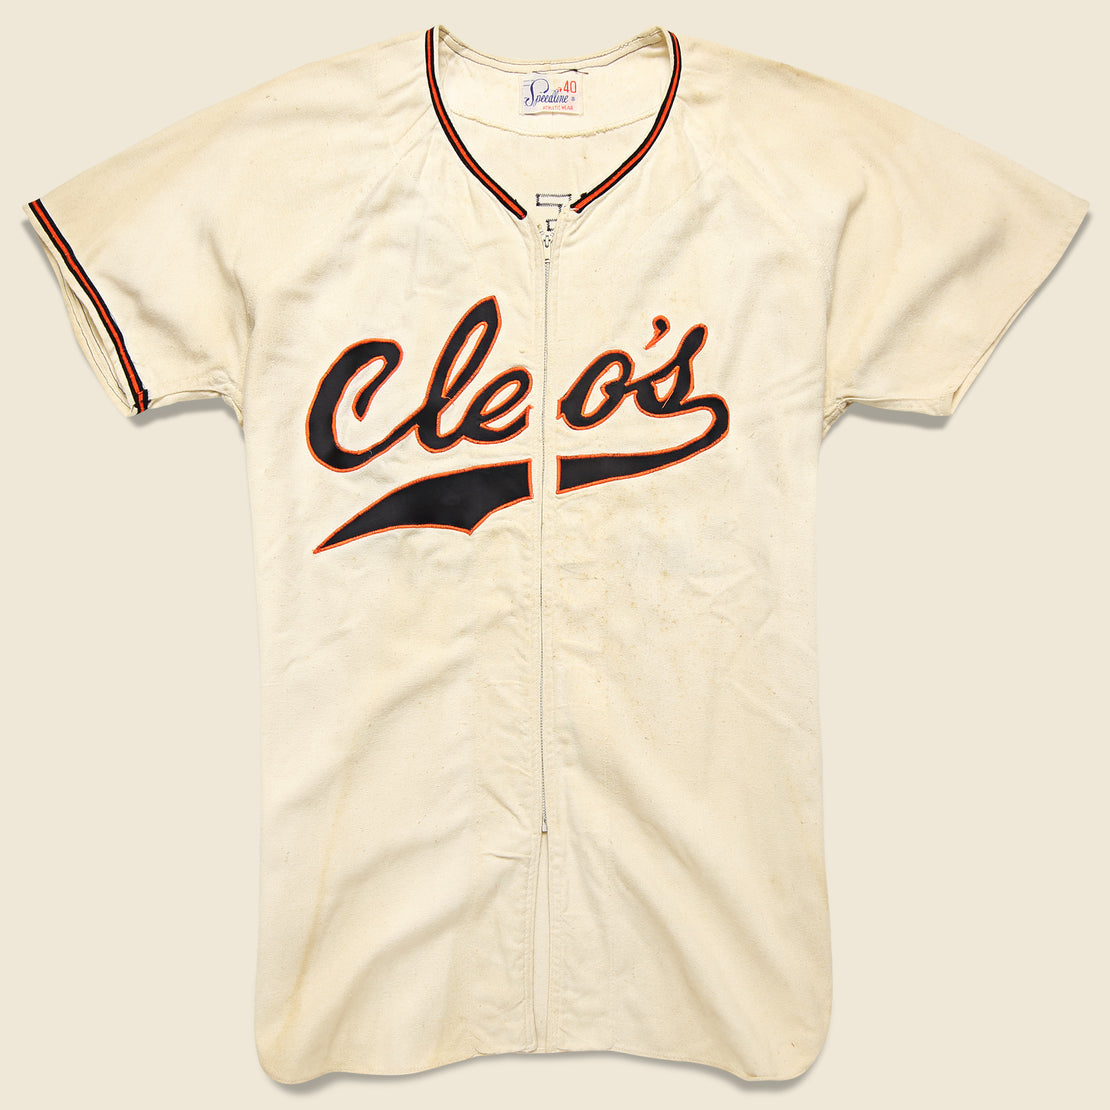 Vintage Cleo's Car Wash Zip Up Jersey - Cream